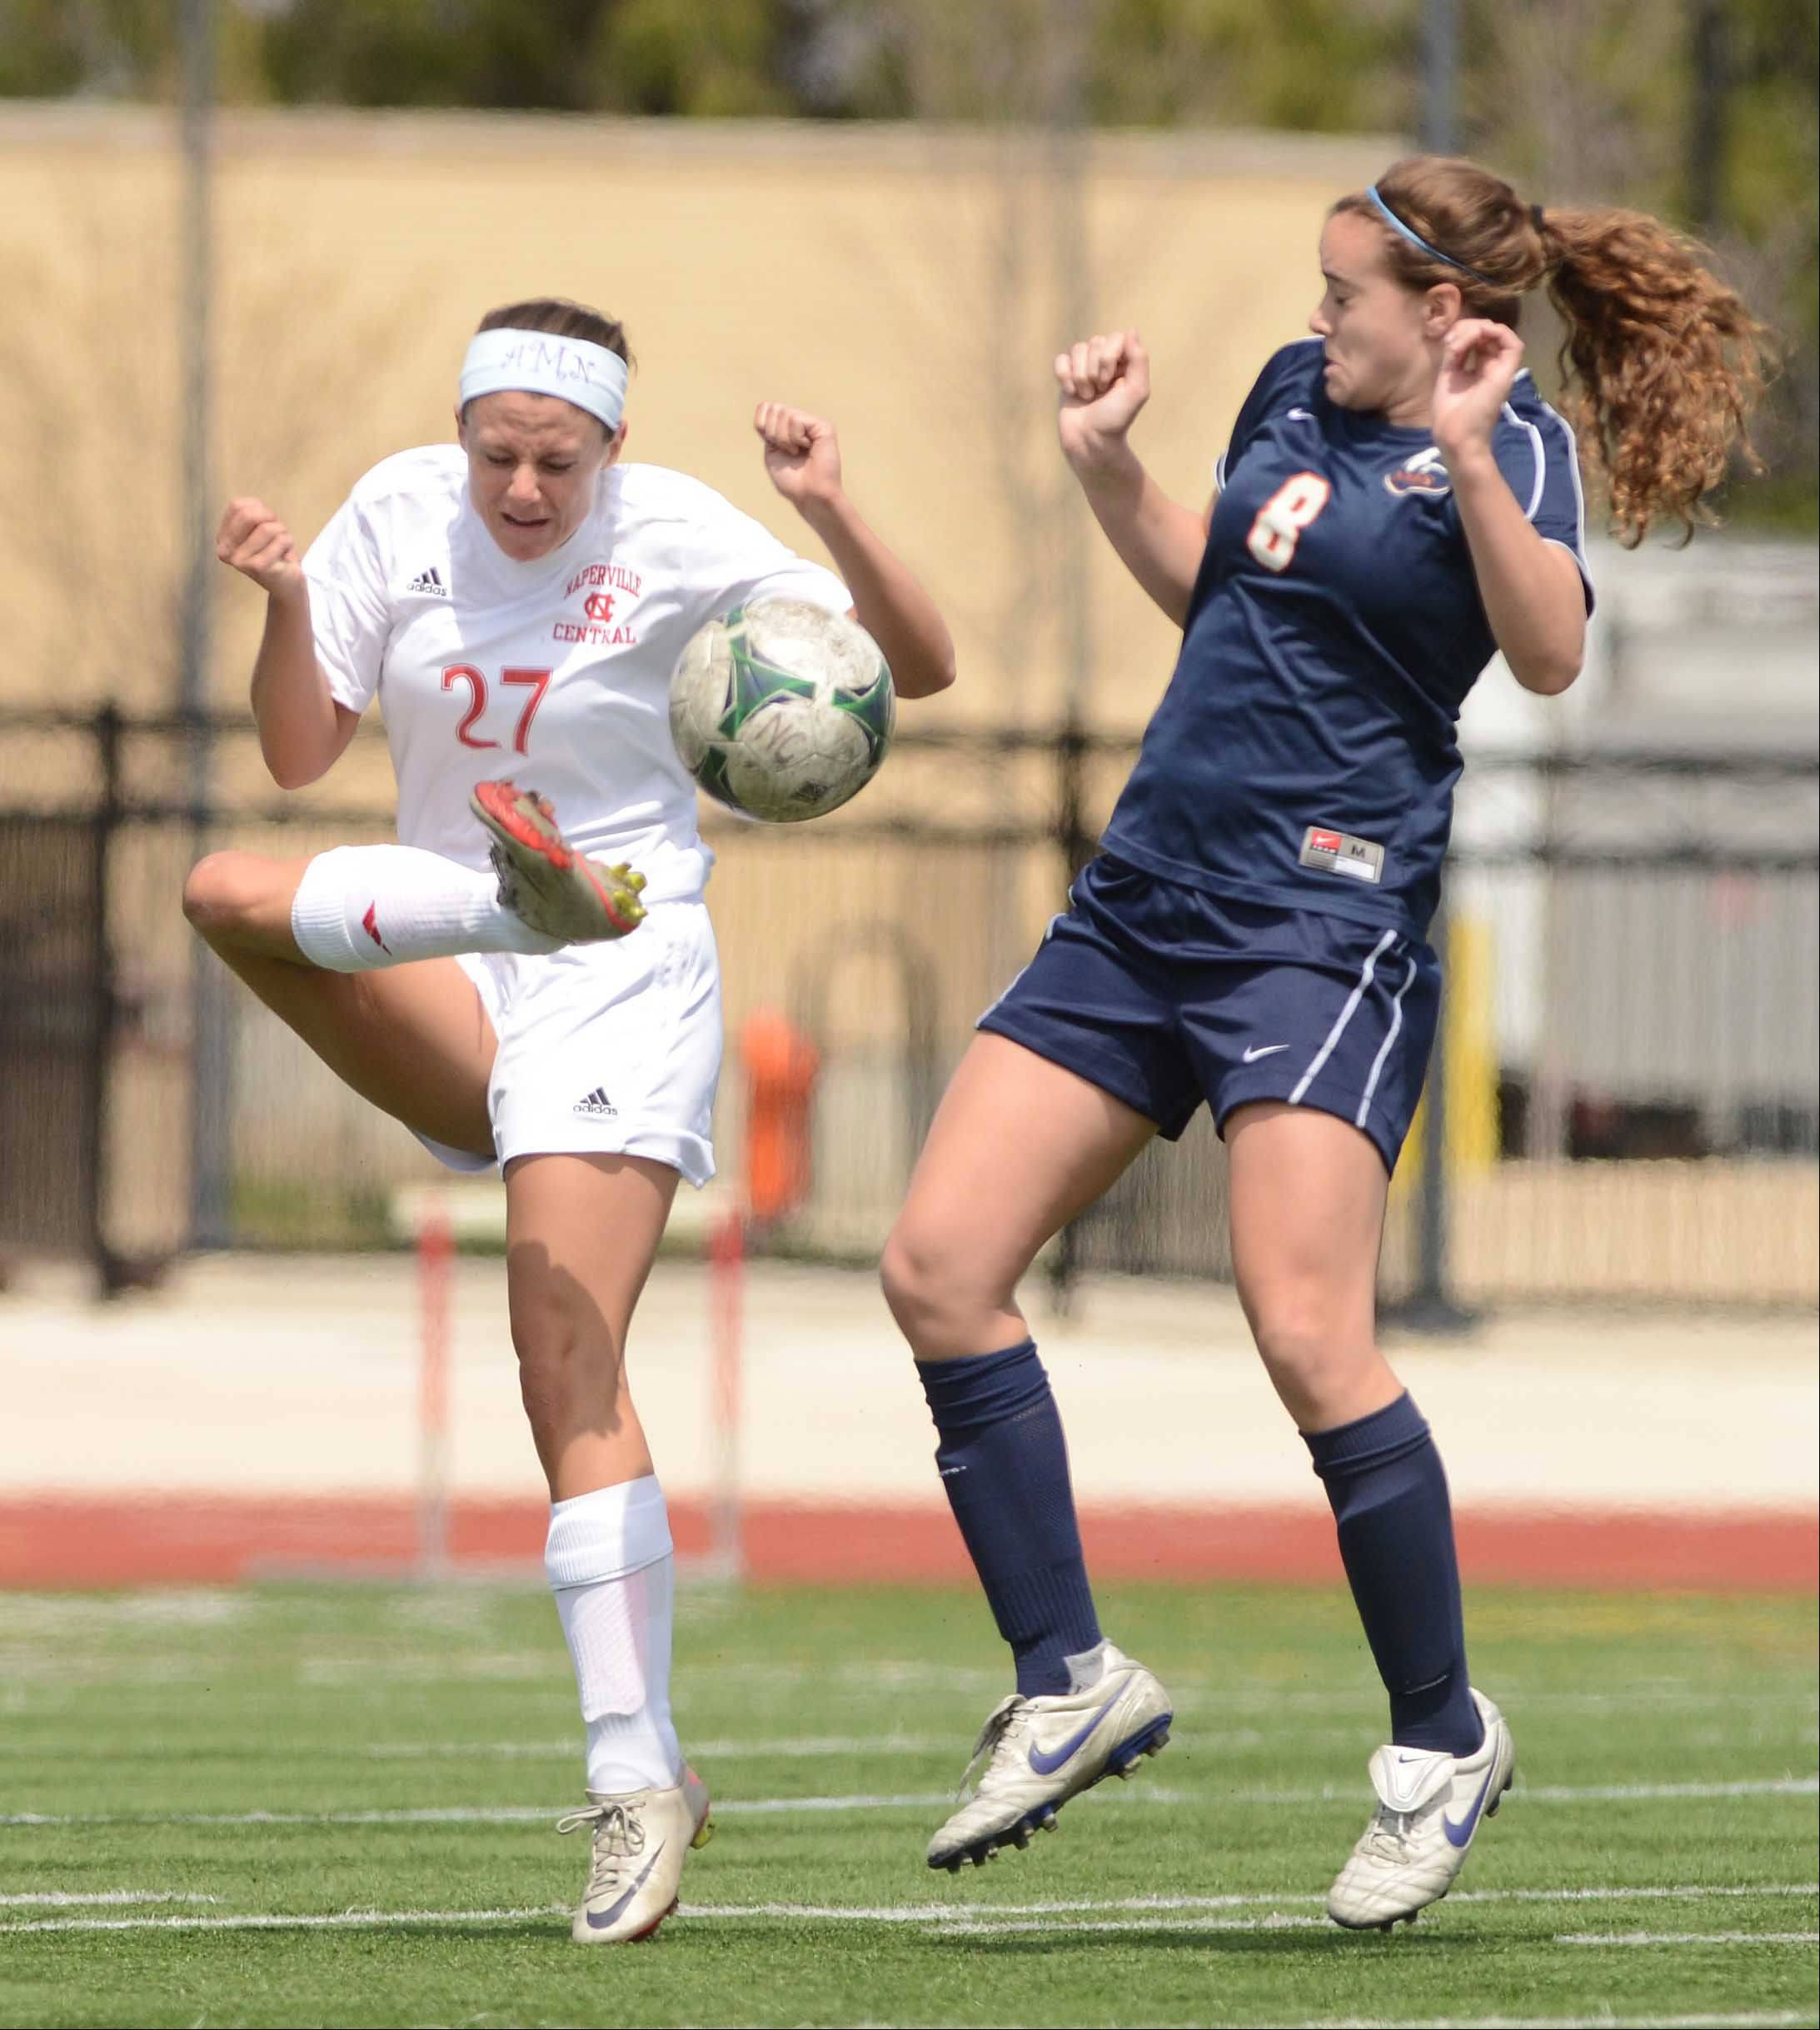 Amanda Alberts of Naperville Central,left, and Abbie Boswell of Naperville North bothe played during the Naperville Invitational Championship game Saturday at Naperville Central.